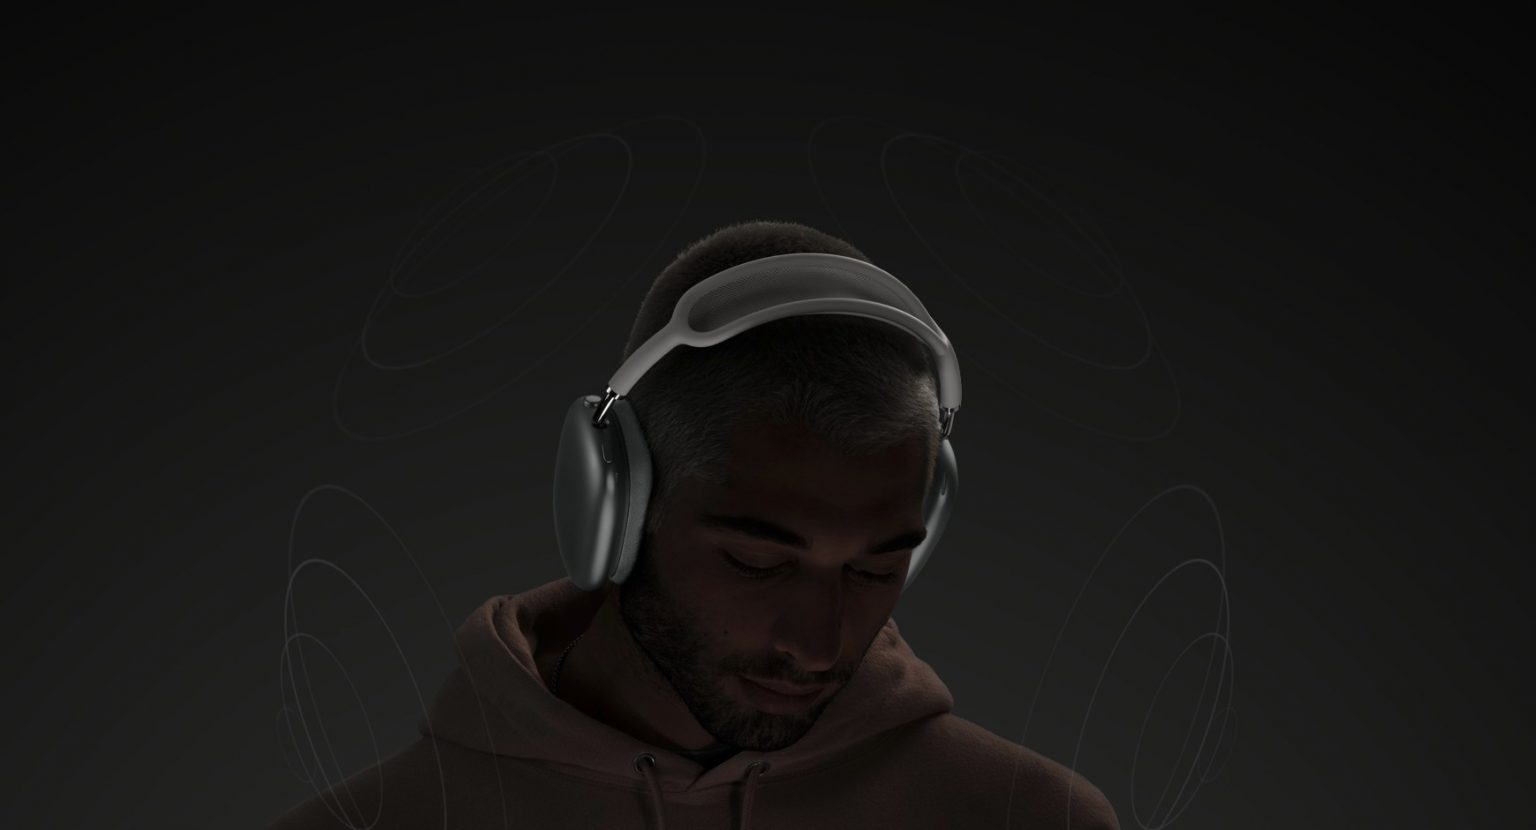 Spatial audio for Apple Music